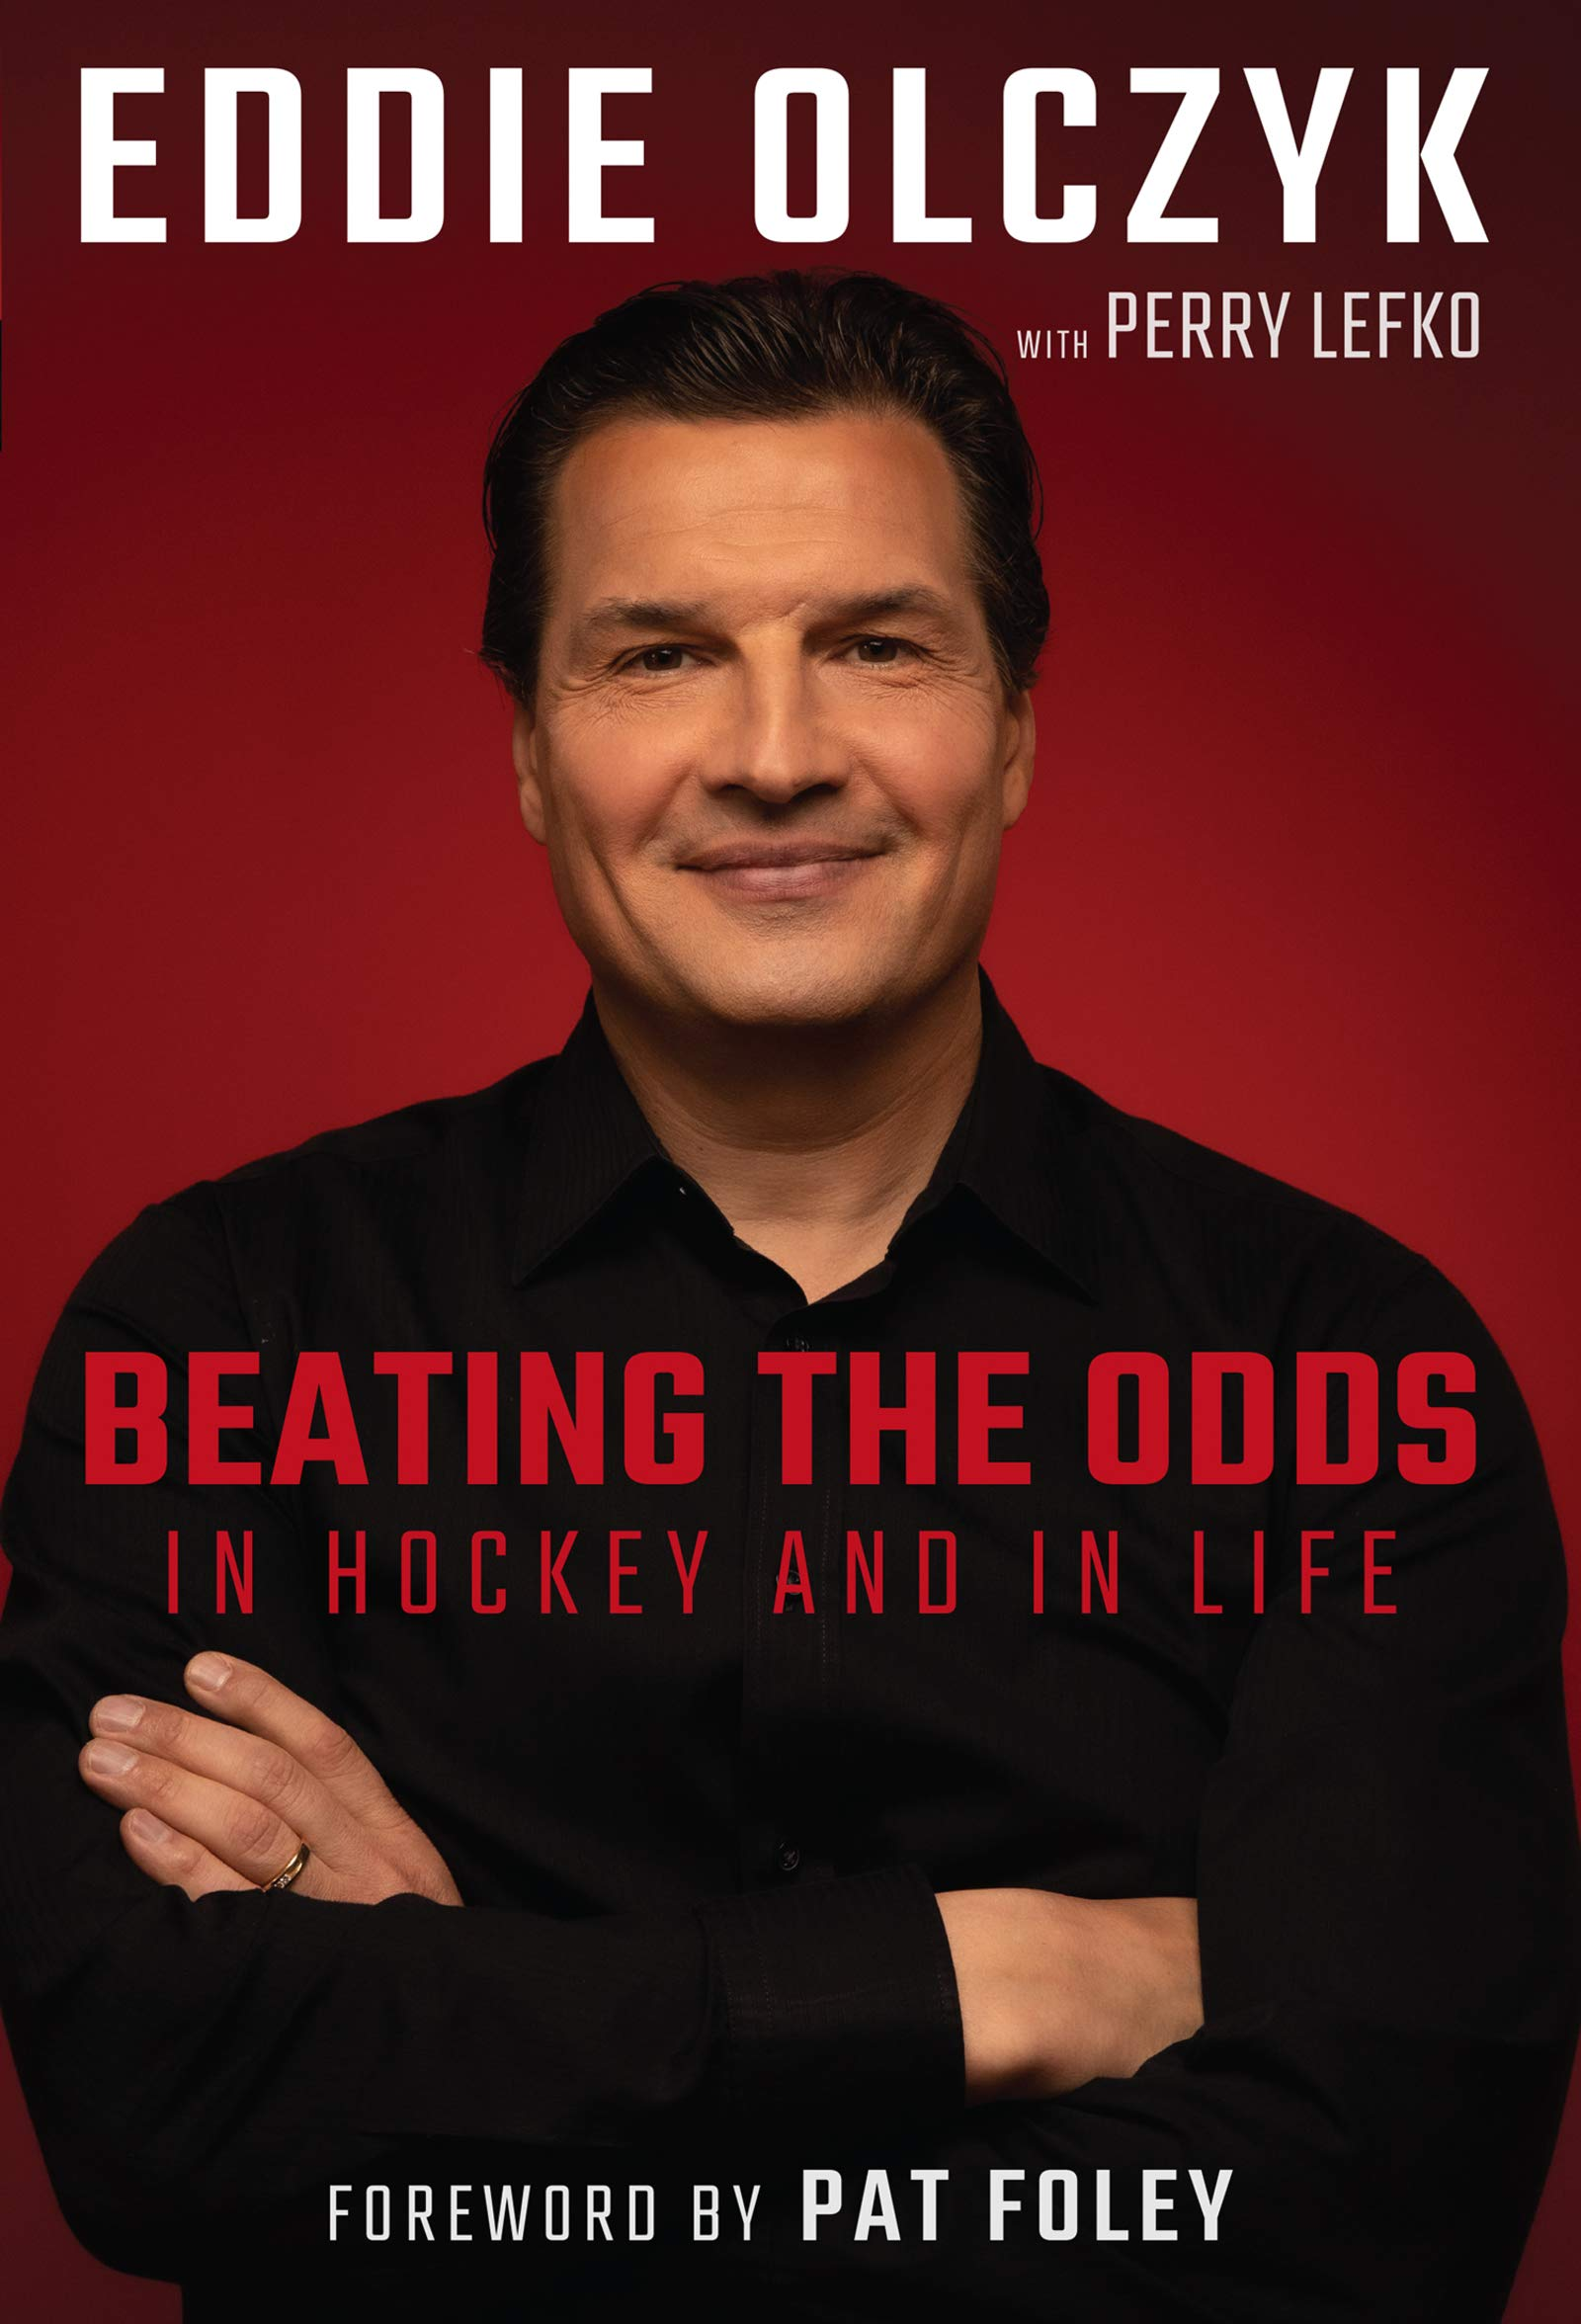 Eddie Olczyk: Beating the Odds in Hockey and in Life (English Edition)